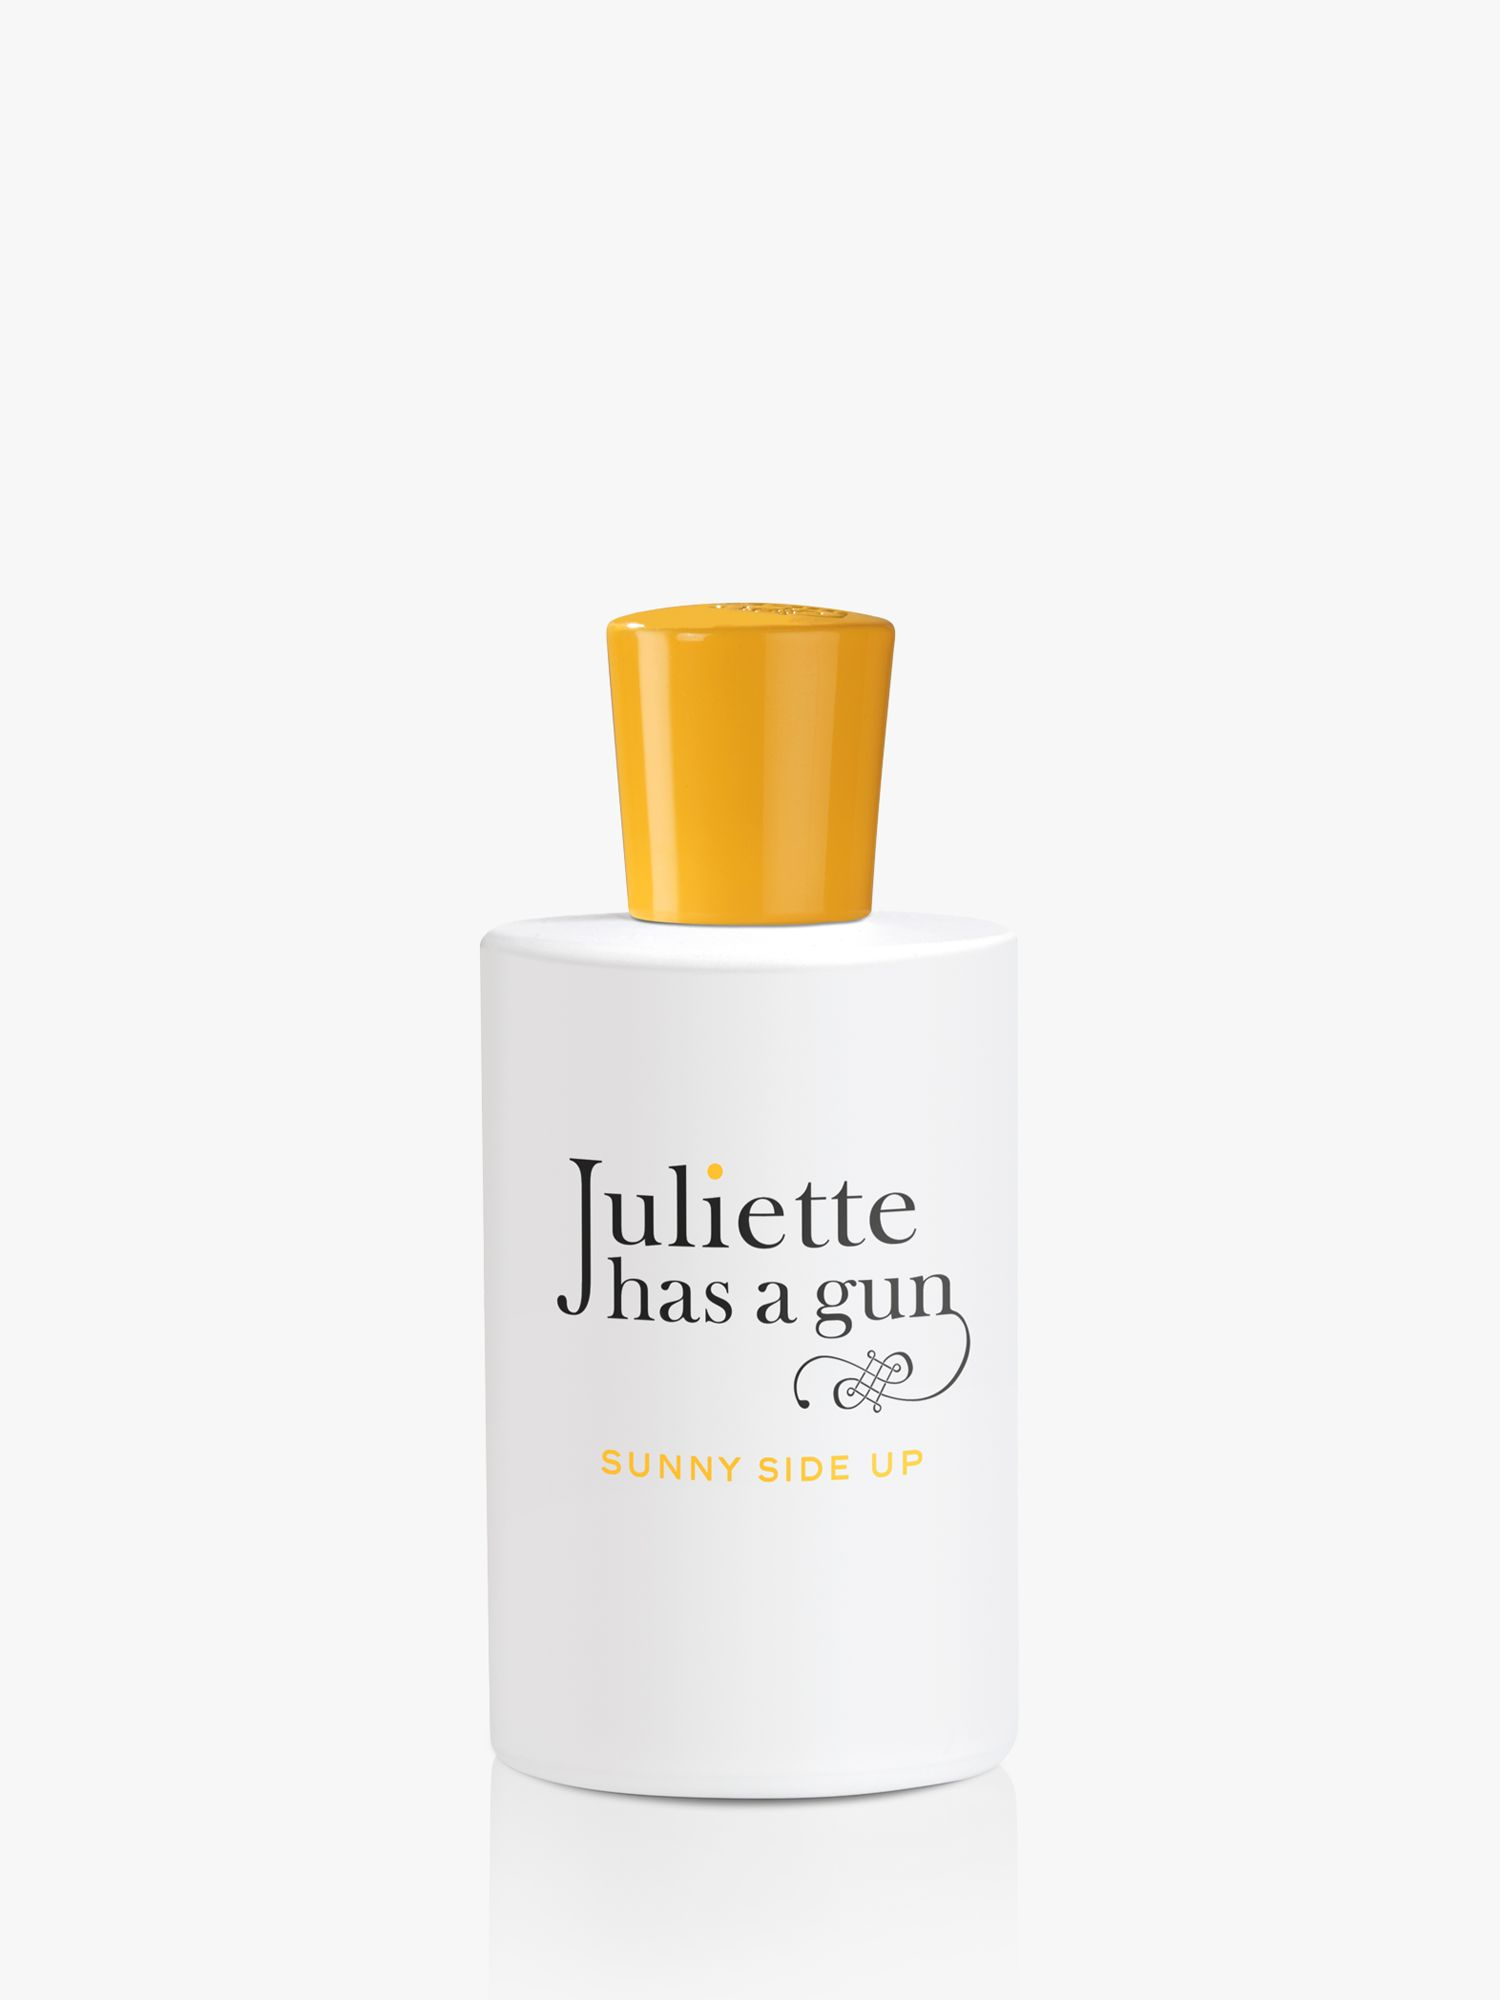 Juliette Has A Gun Juliette has a Gun Sunny Side Up Eau de Parfum, 100ml